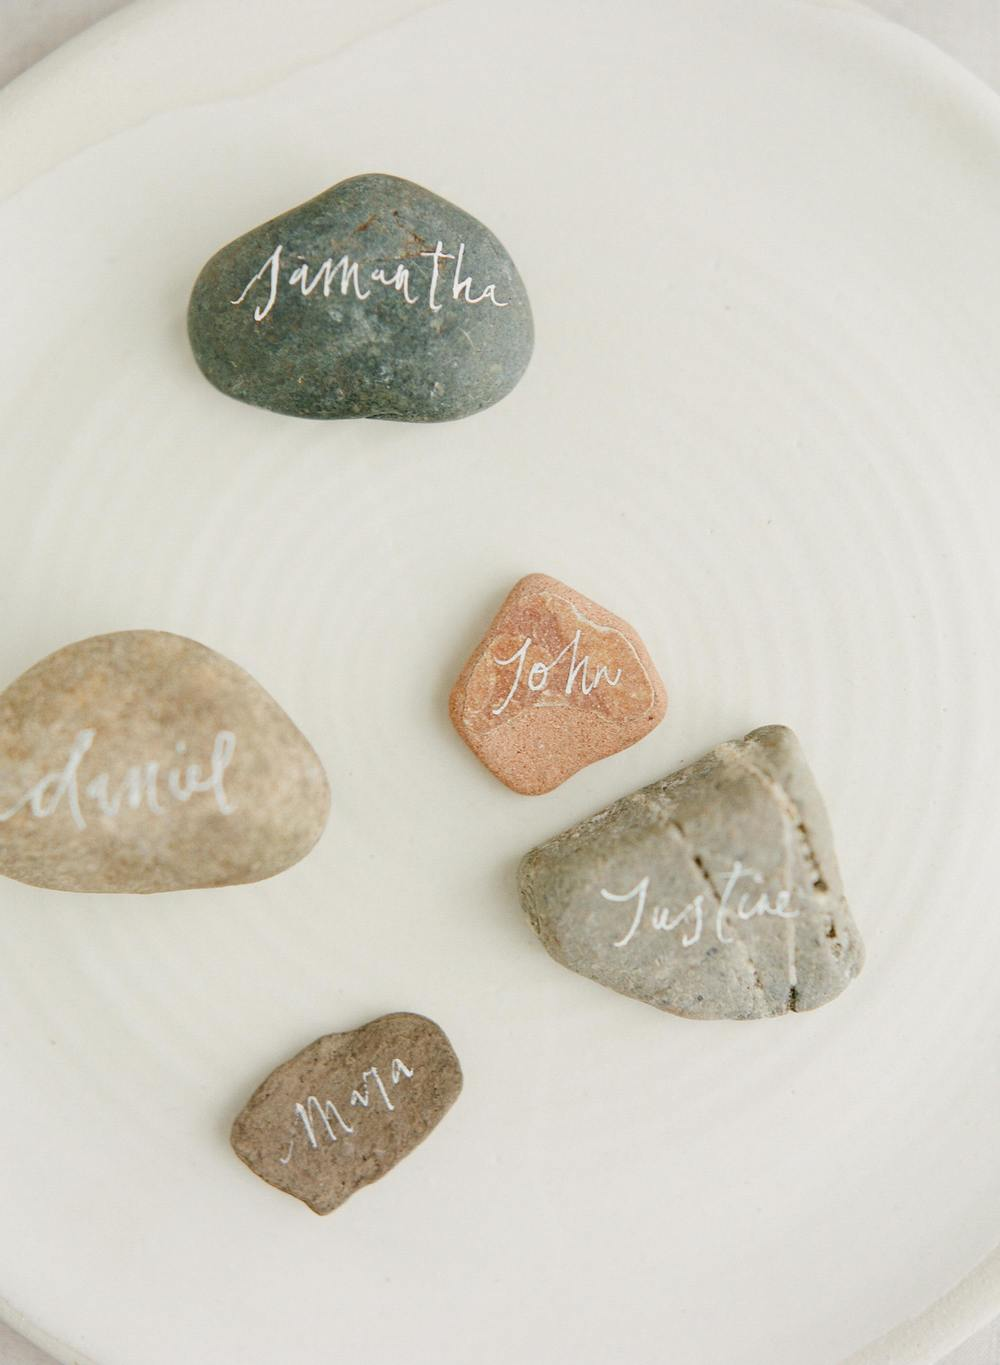 17-rock-calligraphy-place-cards-tara-spencer.jpg